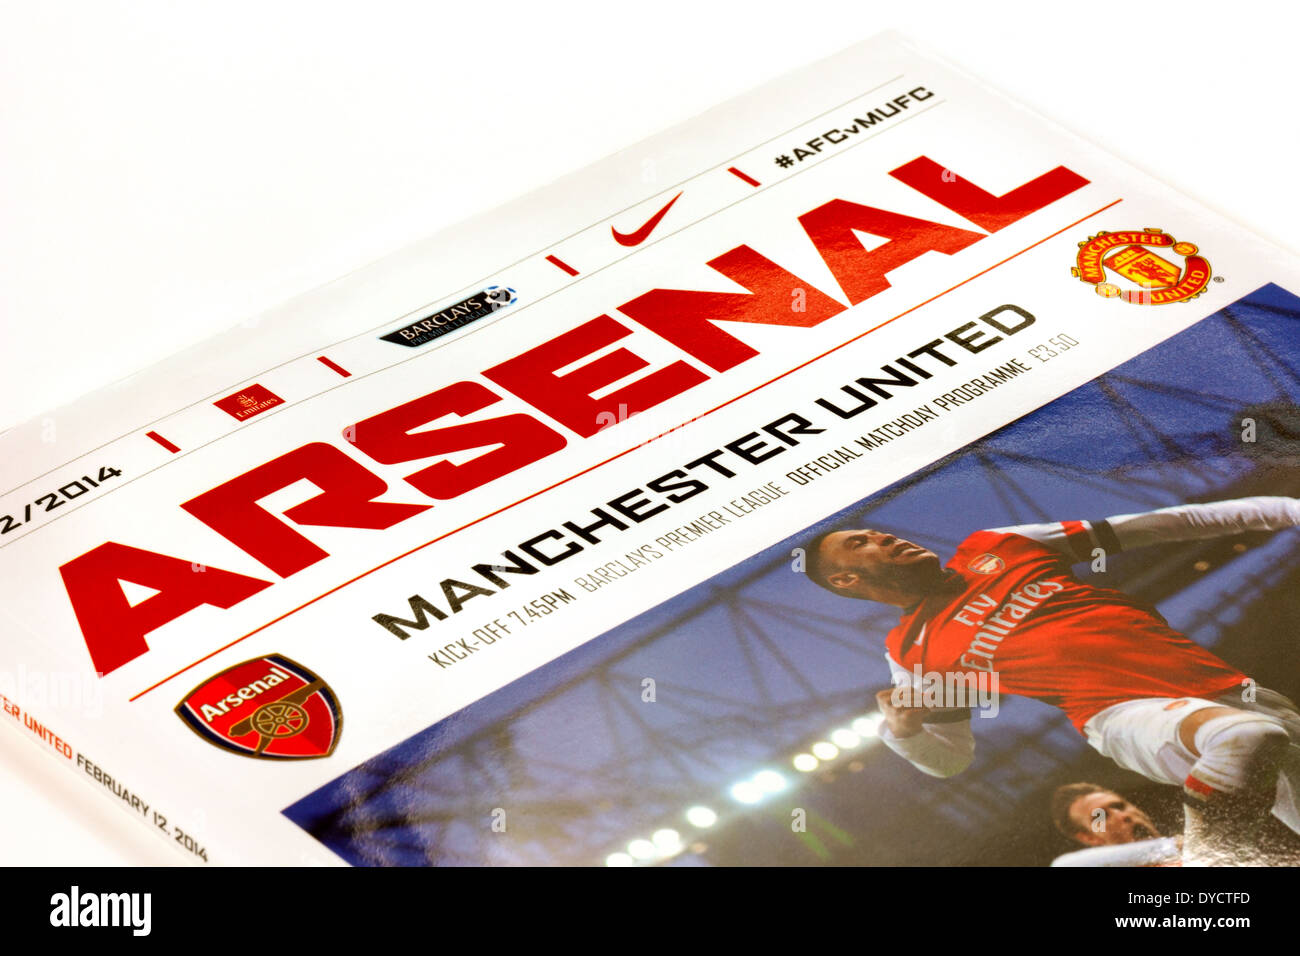 Arsenal vs Manchester United Premier league football match program from the 2013-2014 premiership season, England - Stock Image